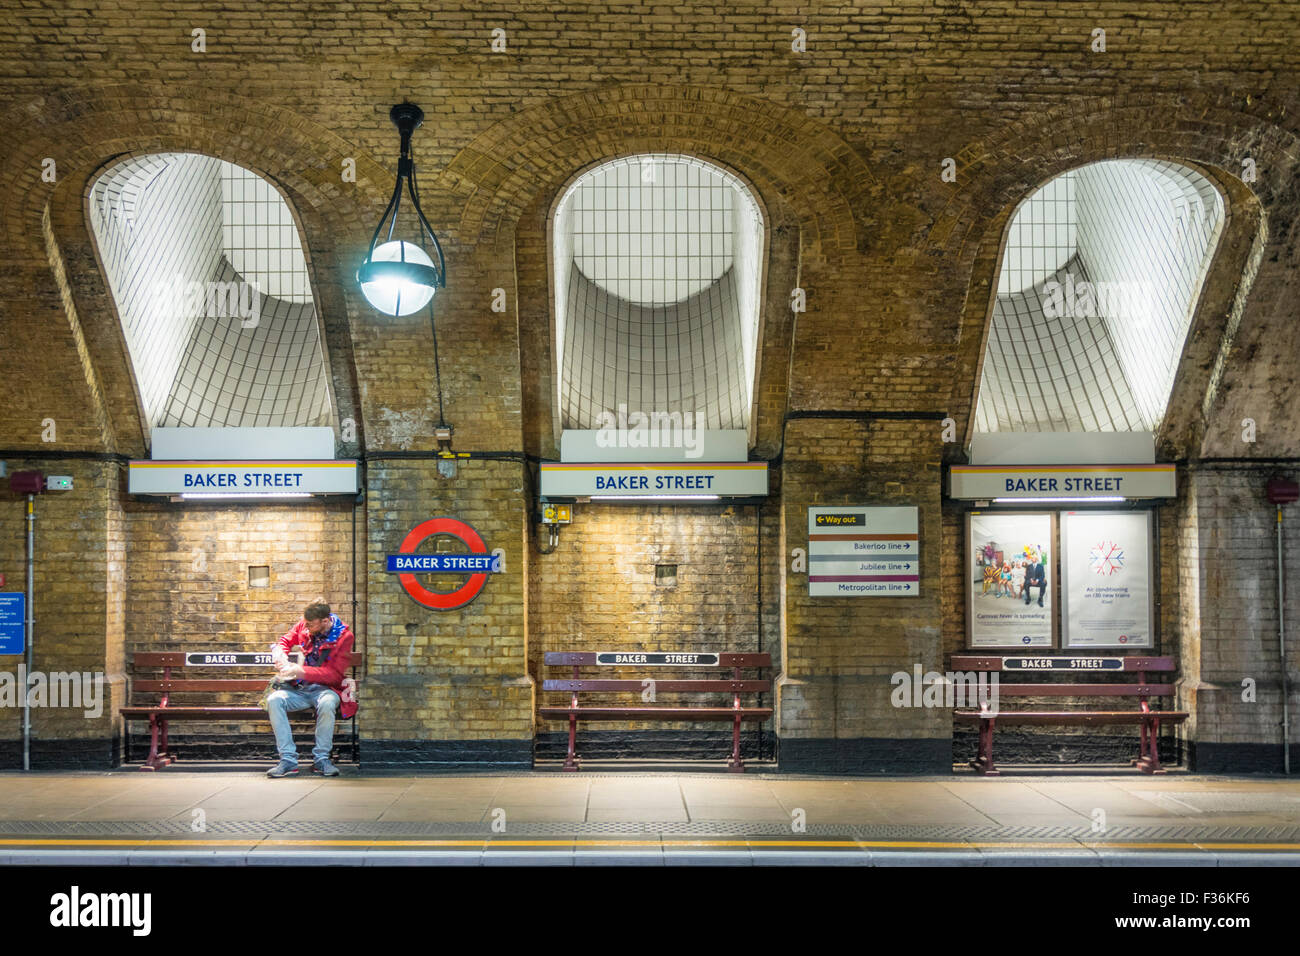 man waiting for a tube train at Baker Street underground station platform London England UK Gb EU Europe - Stock Image